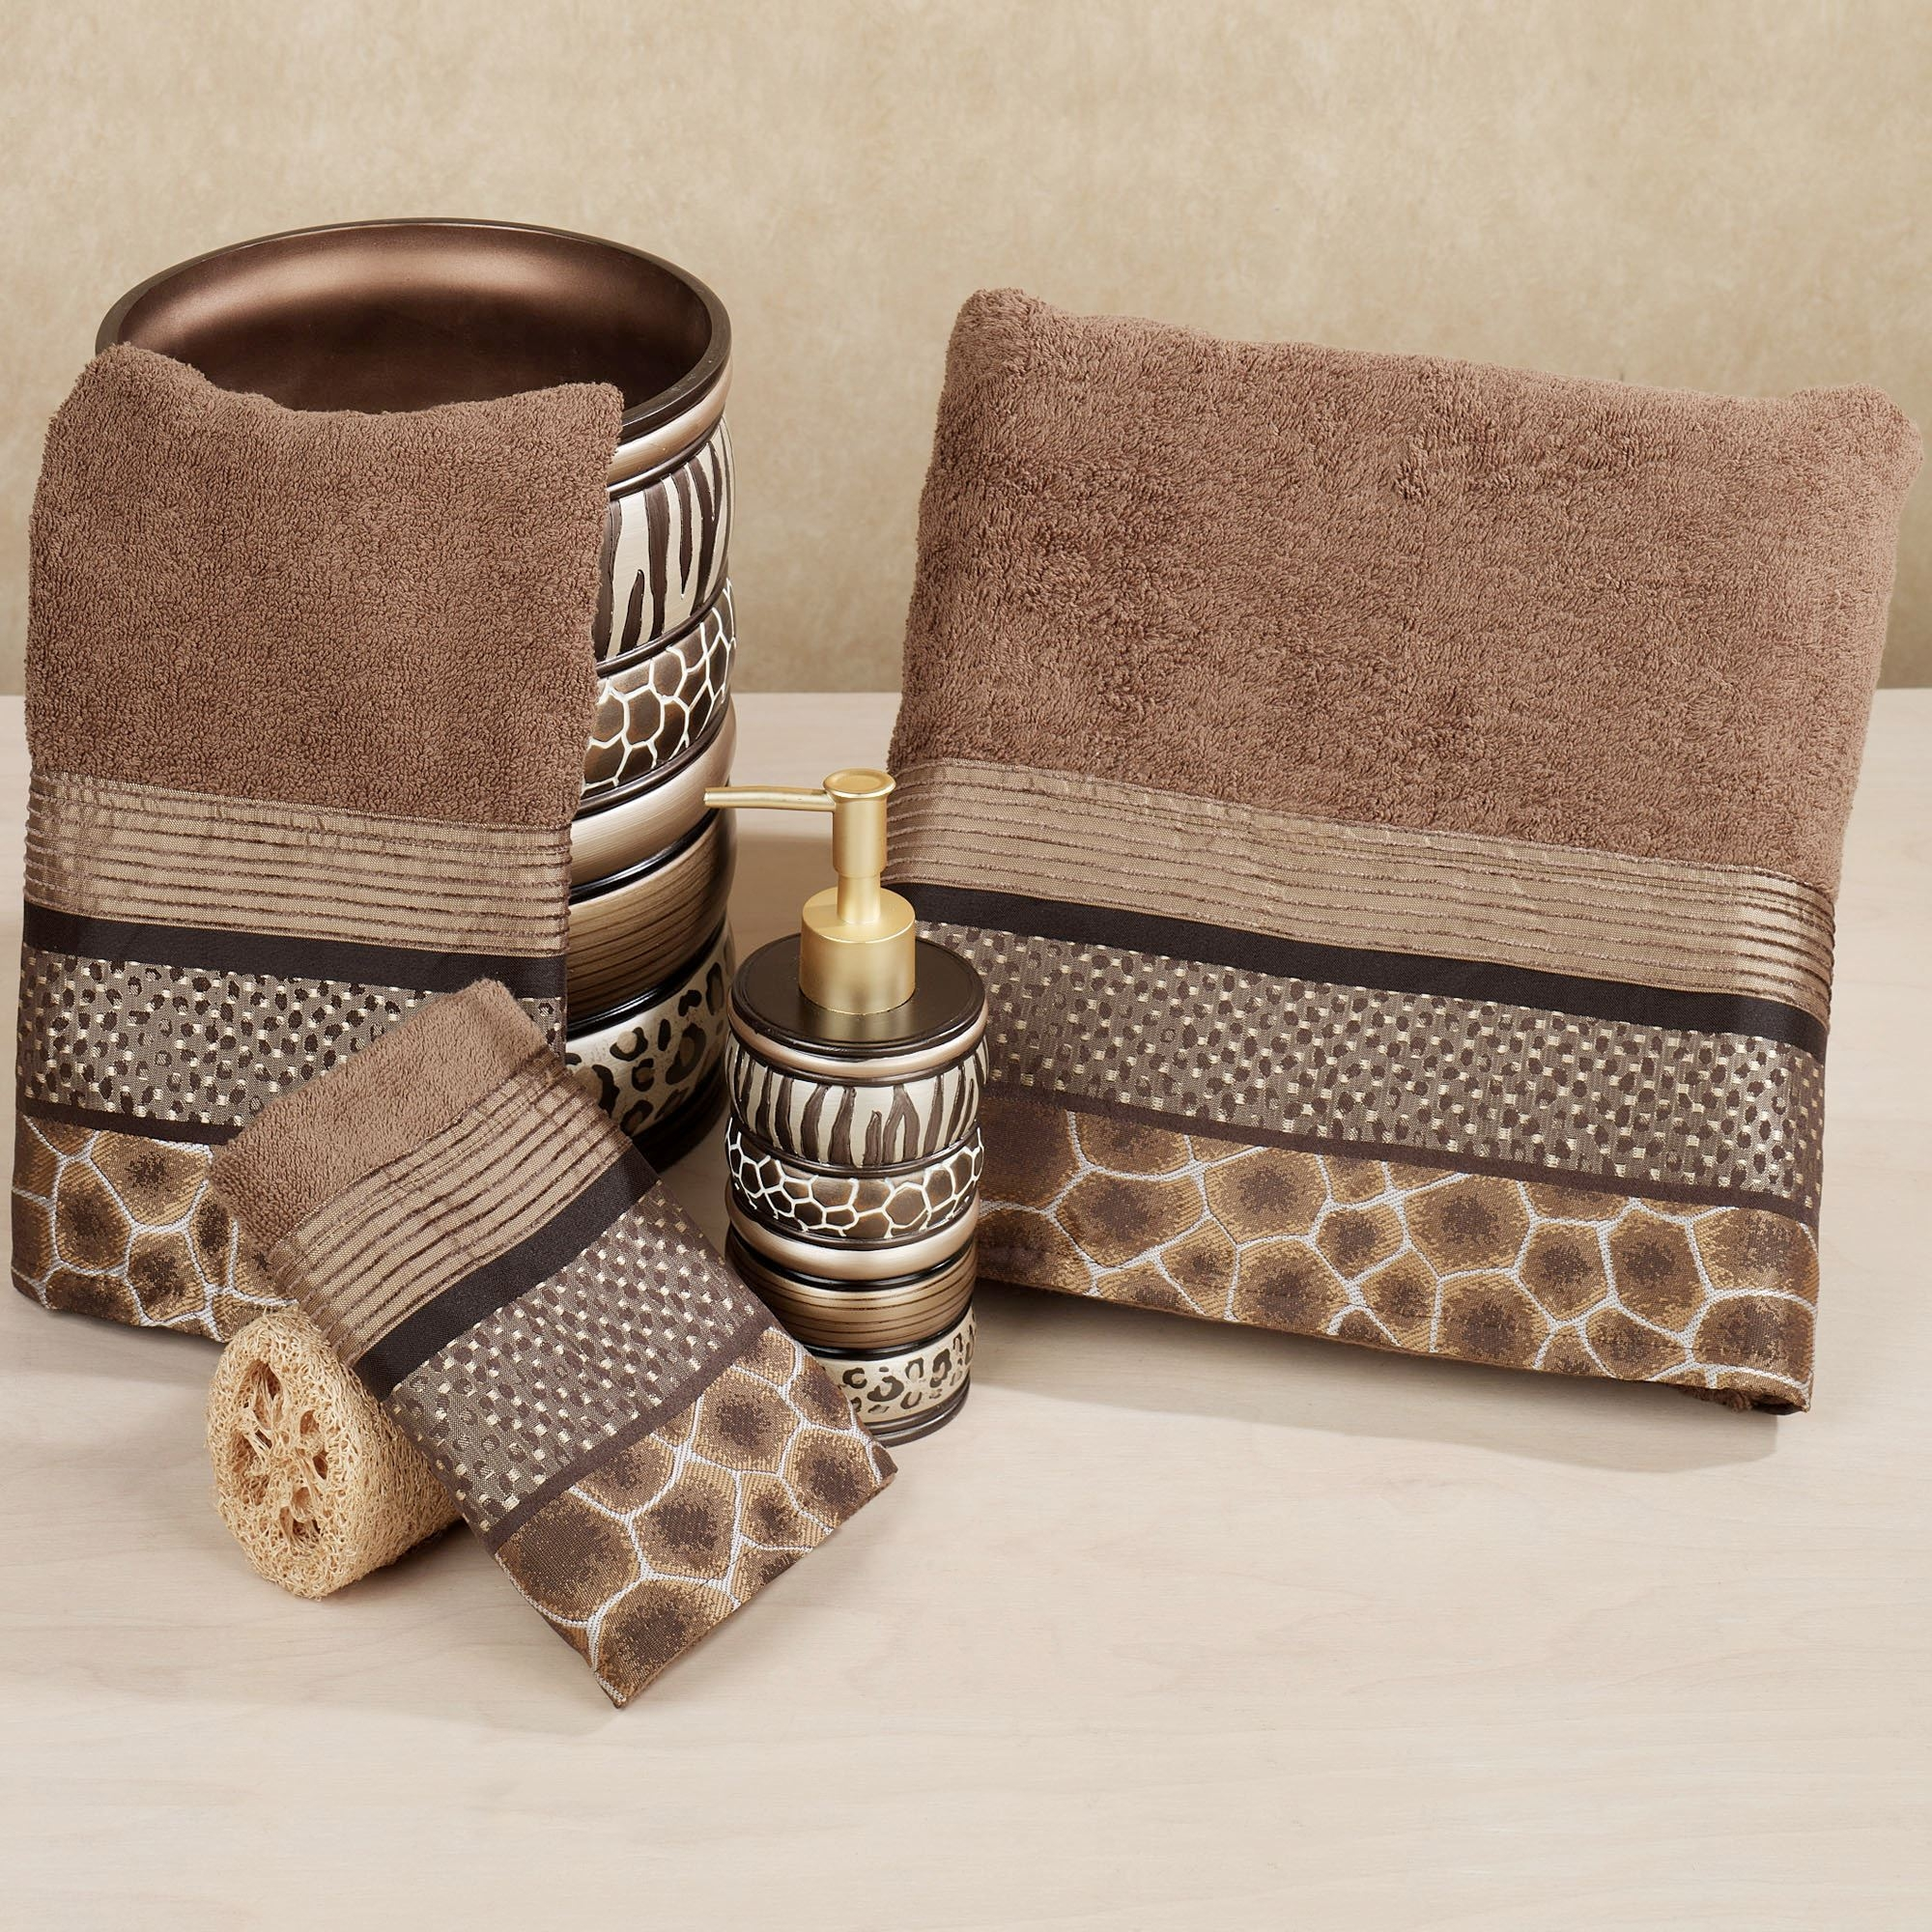 Animal Print Bathroom Rugs And Towels